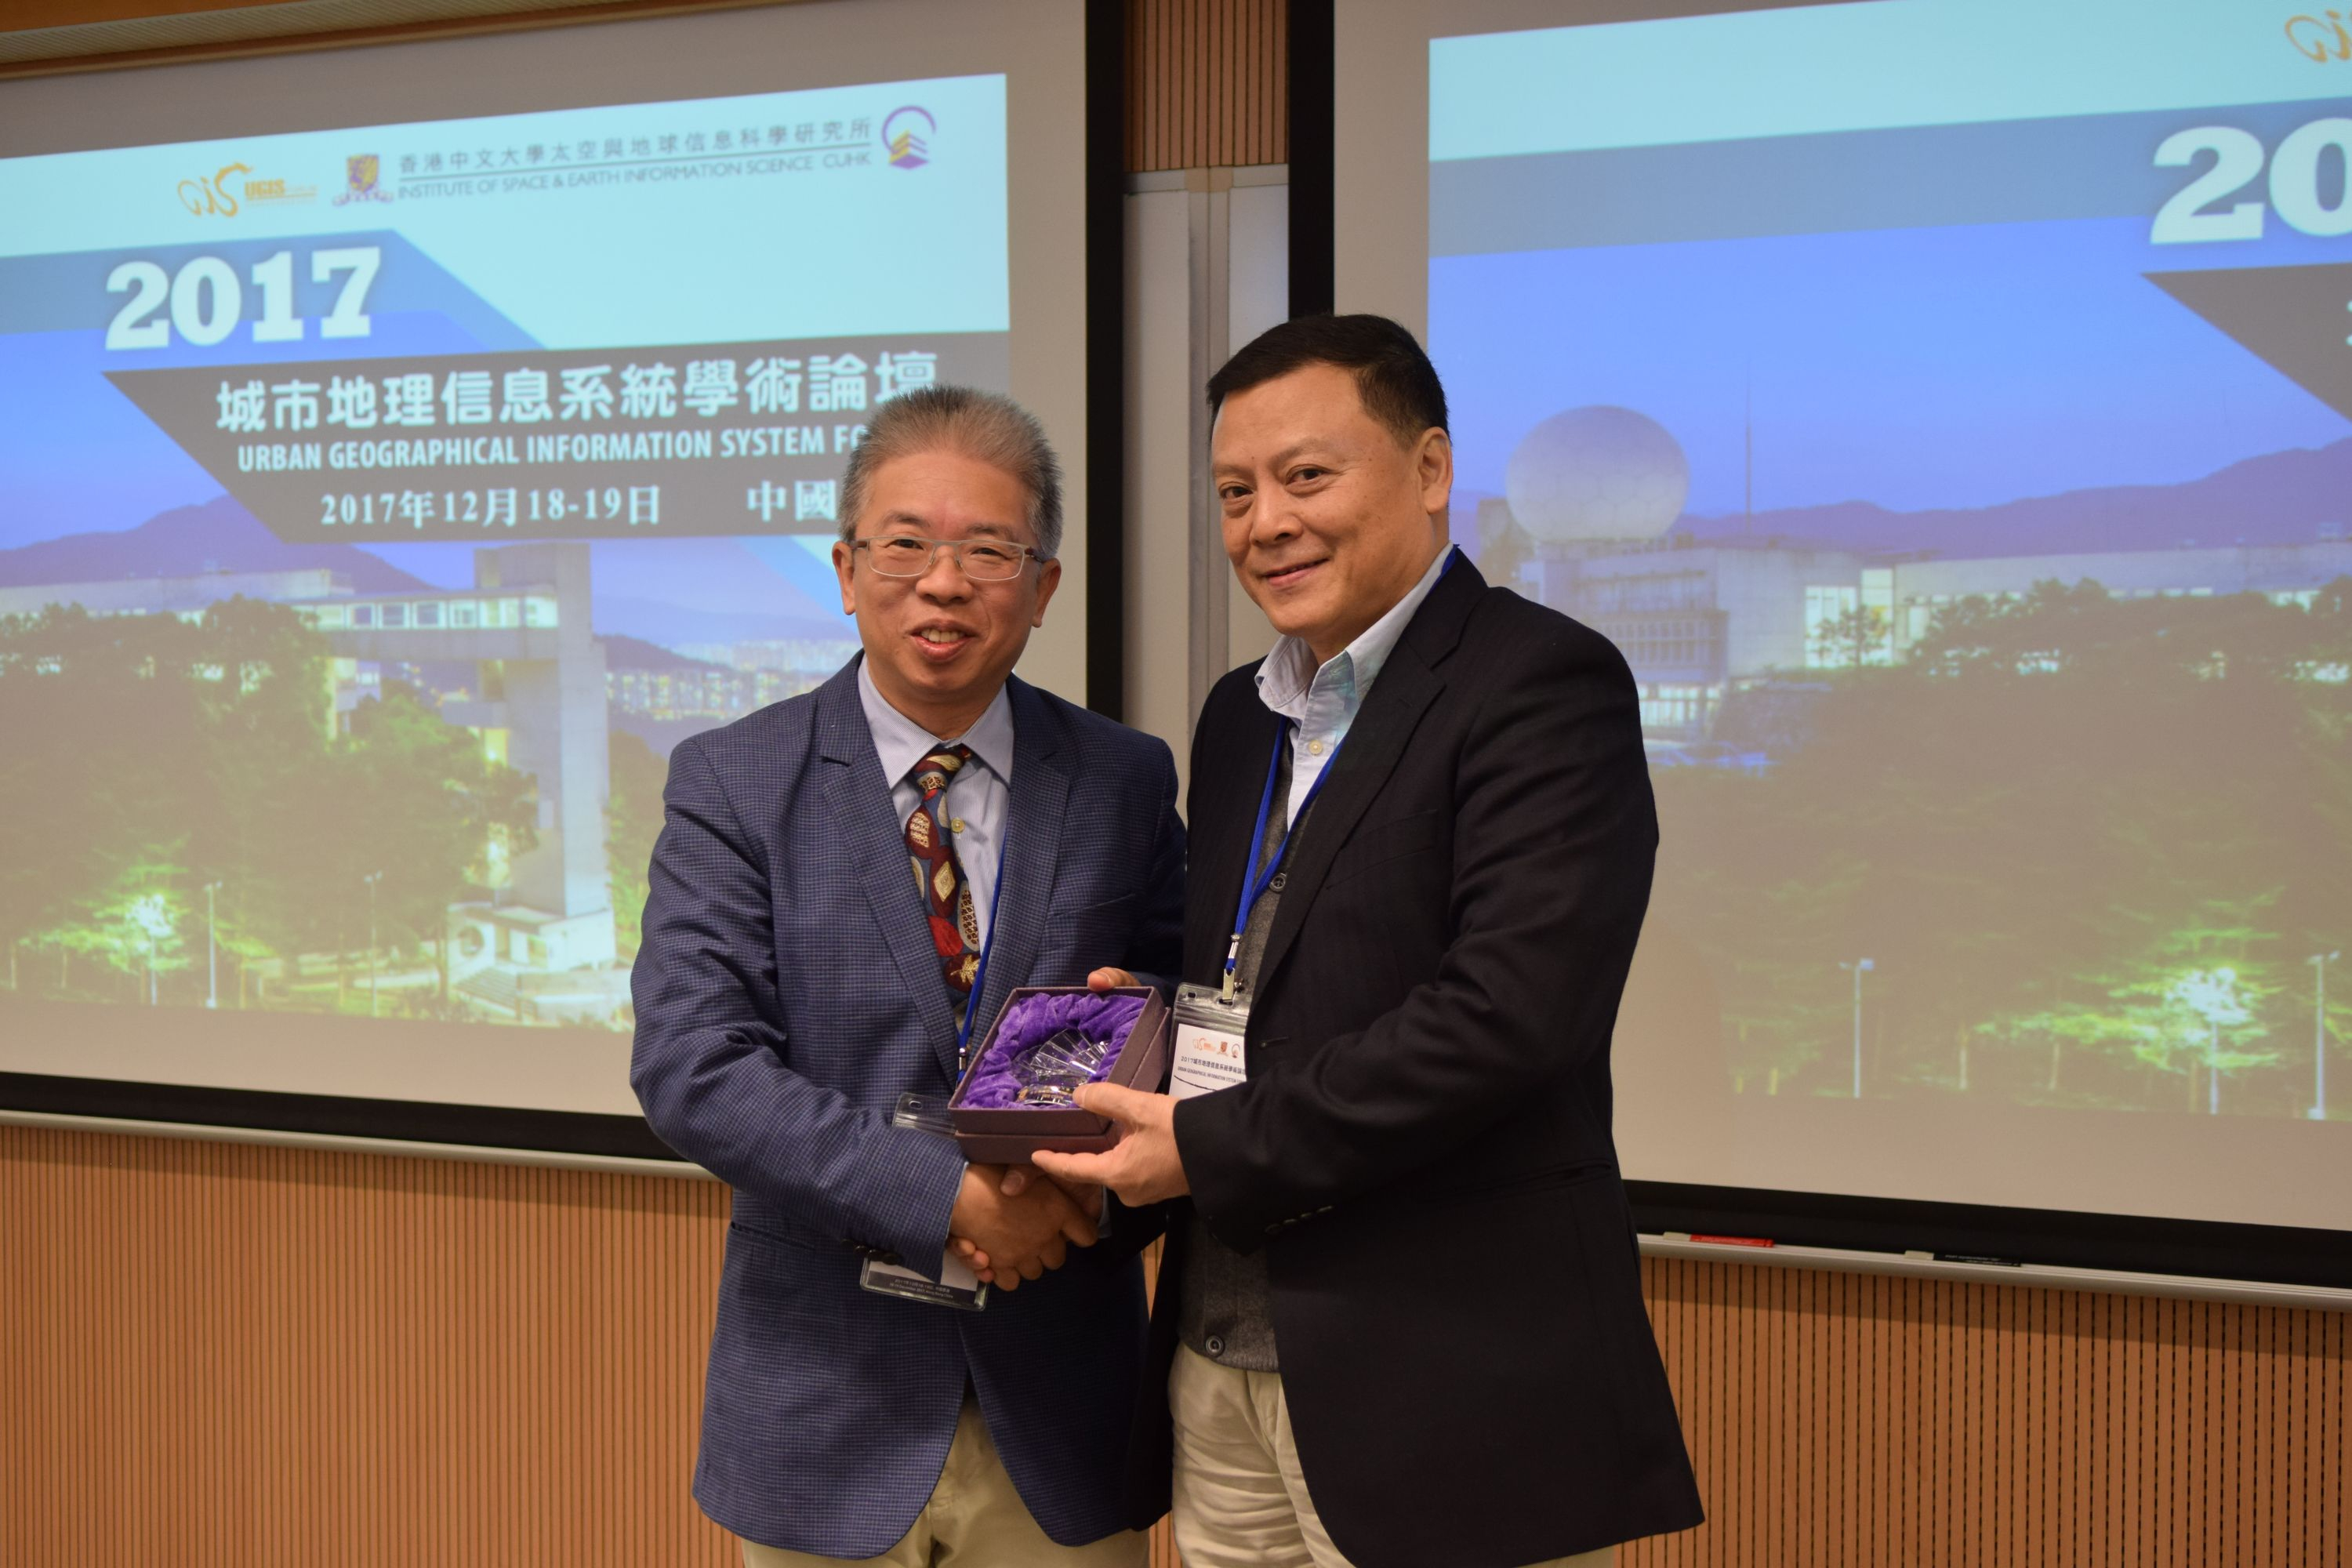 Prof. CHIU Chi Yue, Dean of the Faculty of Social Science, CUHK (left) presents a souvenir to Mr. JIANG Miankang, Secretary General of the UGIS Forum and former President of Shanghai Research Institute of Urban and Rural Construction and Traffic Development.